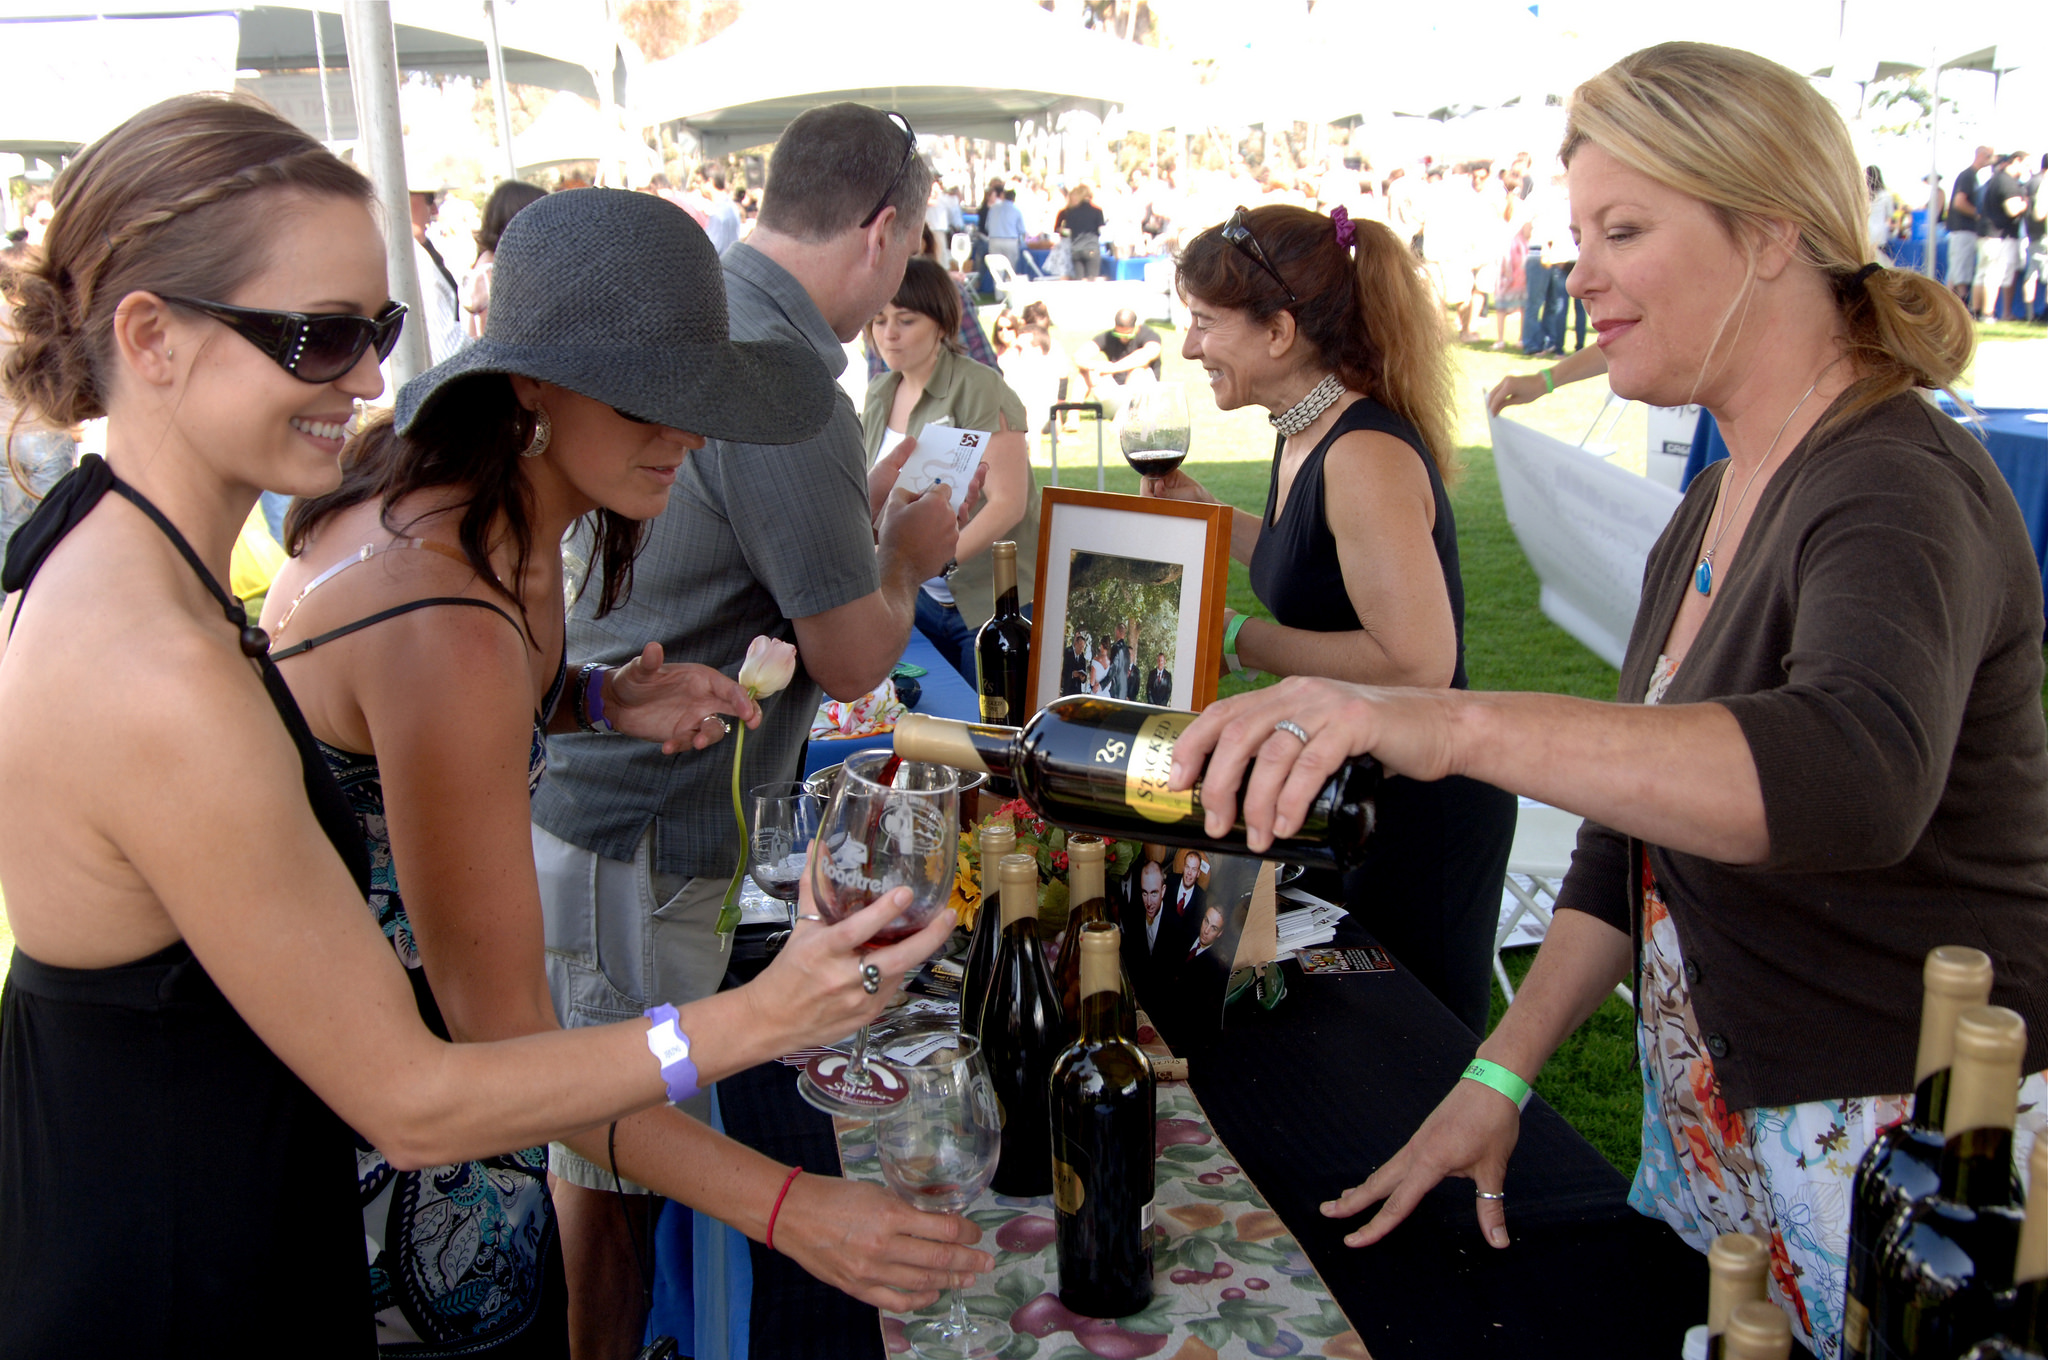 Why Youll Want Vip Tickets To The California Wine Festival